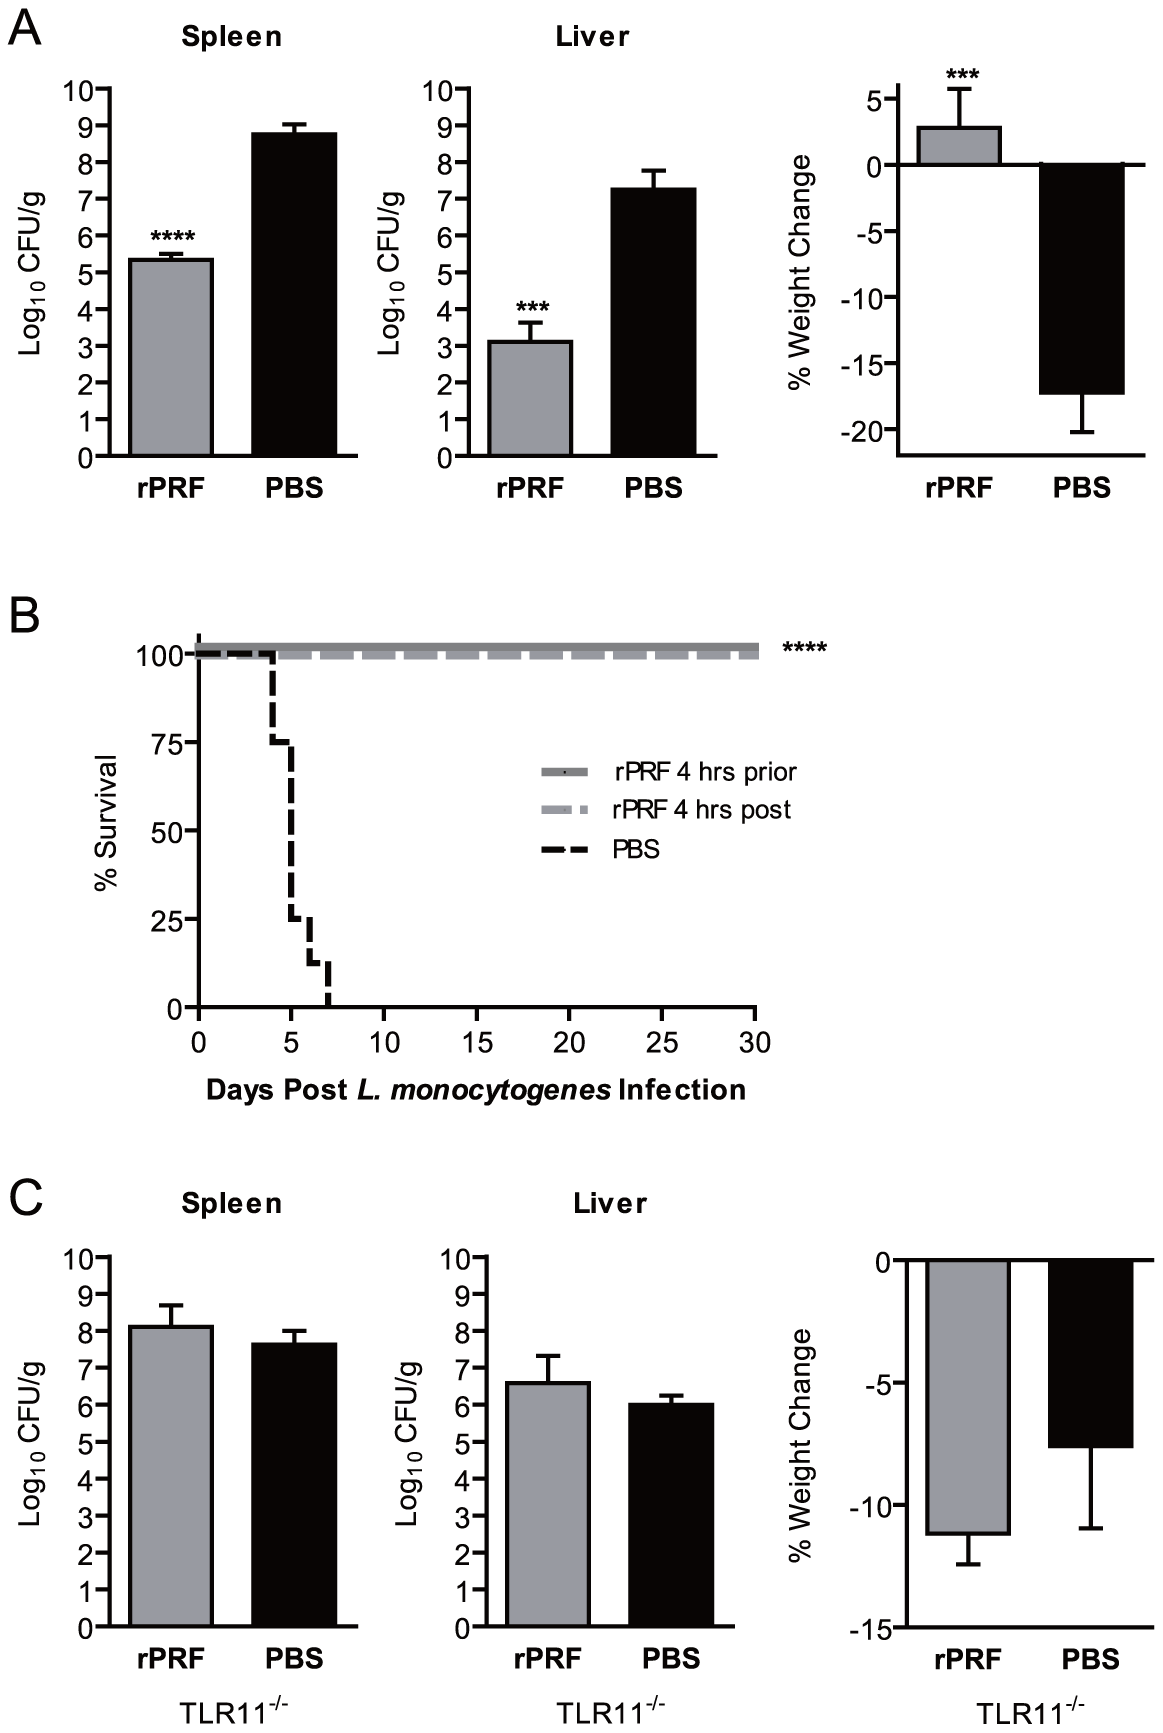 Stimulation with <i>T. gondii</i> profilin is sufficient to confer resistance to <i>L. monocytogenes</i>.